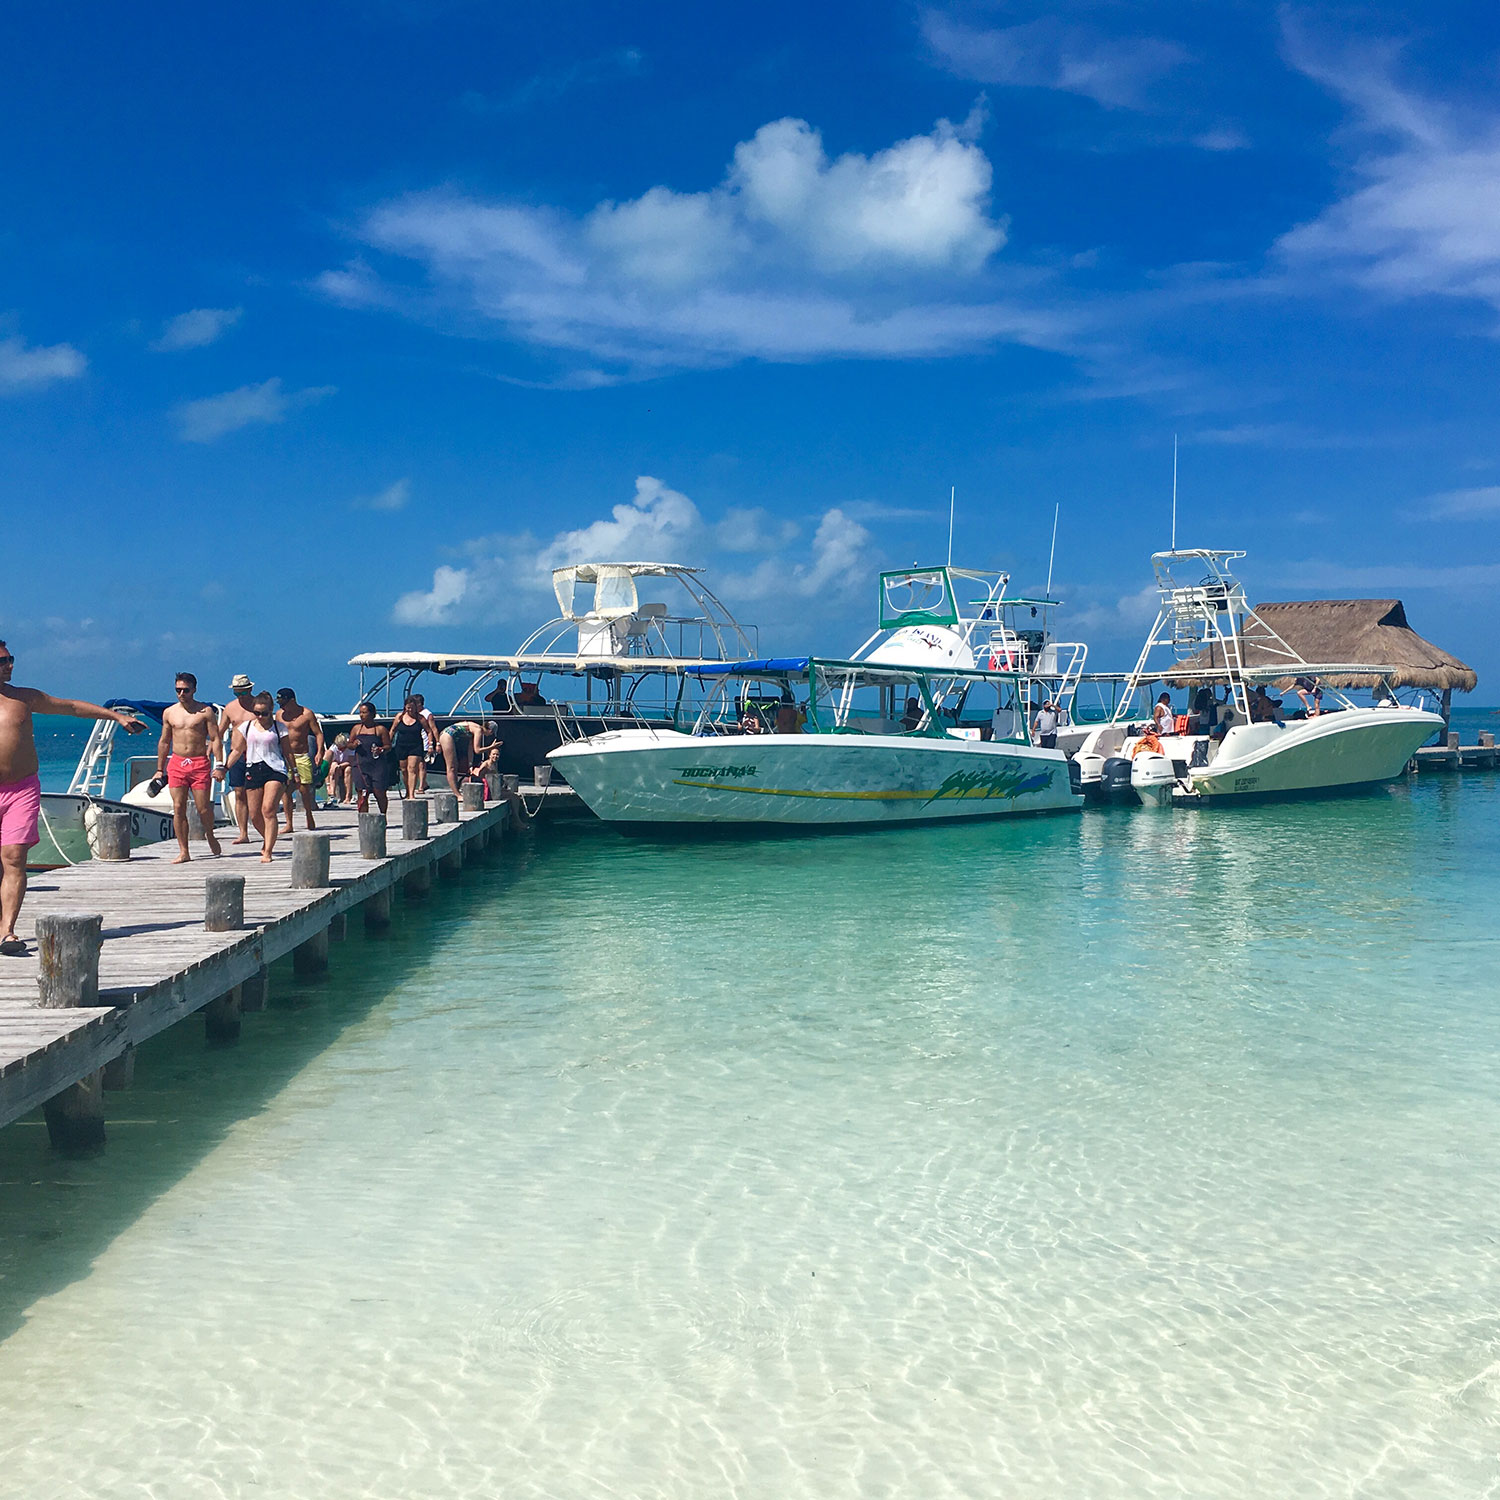 The pier. 6 boats arrive daily, each has maximum 30 visitors.